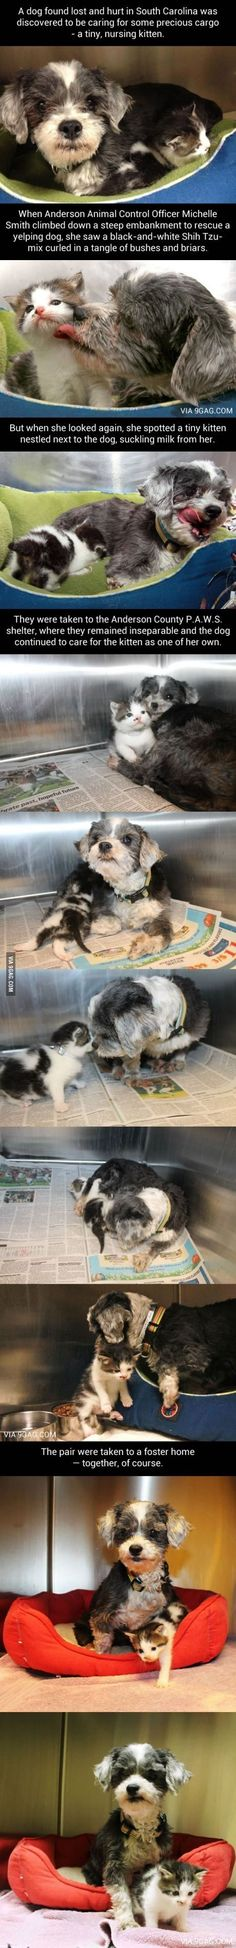 Dog Saves A Kitten cute animals cat cats adorable dog puppy animal kittens pets kitten funny animals